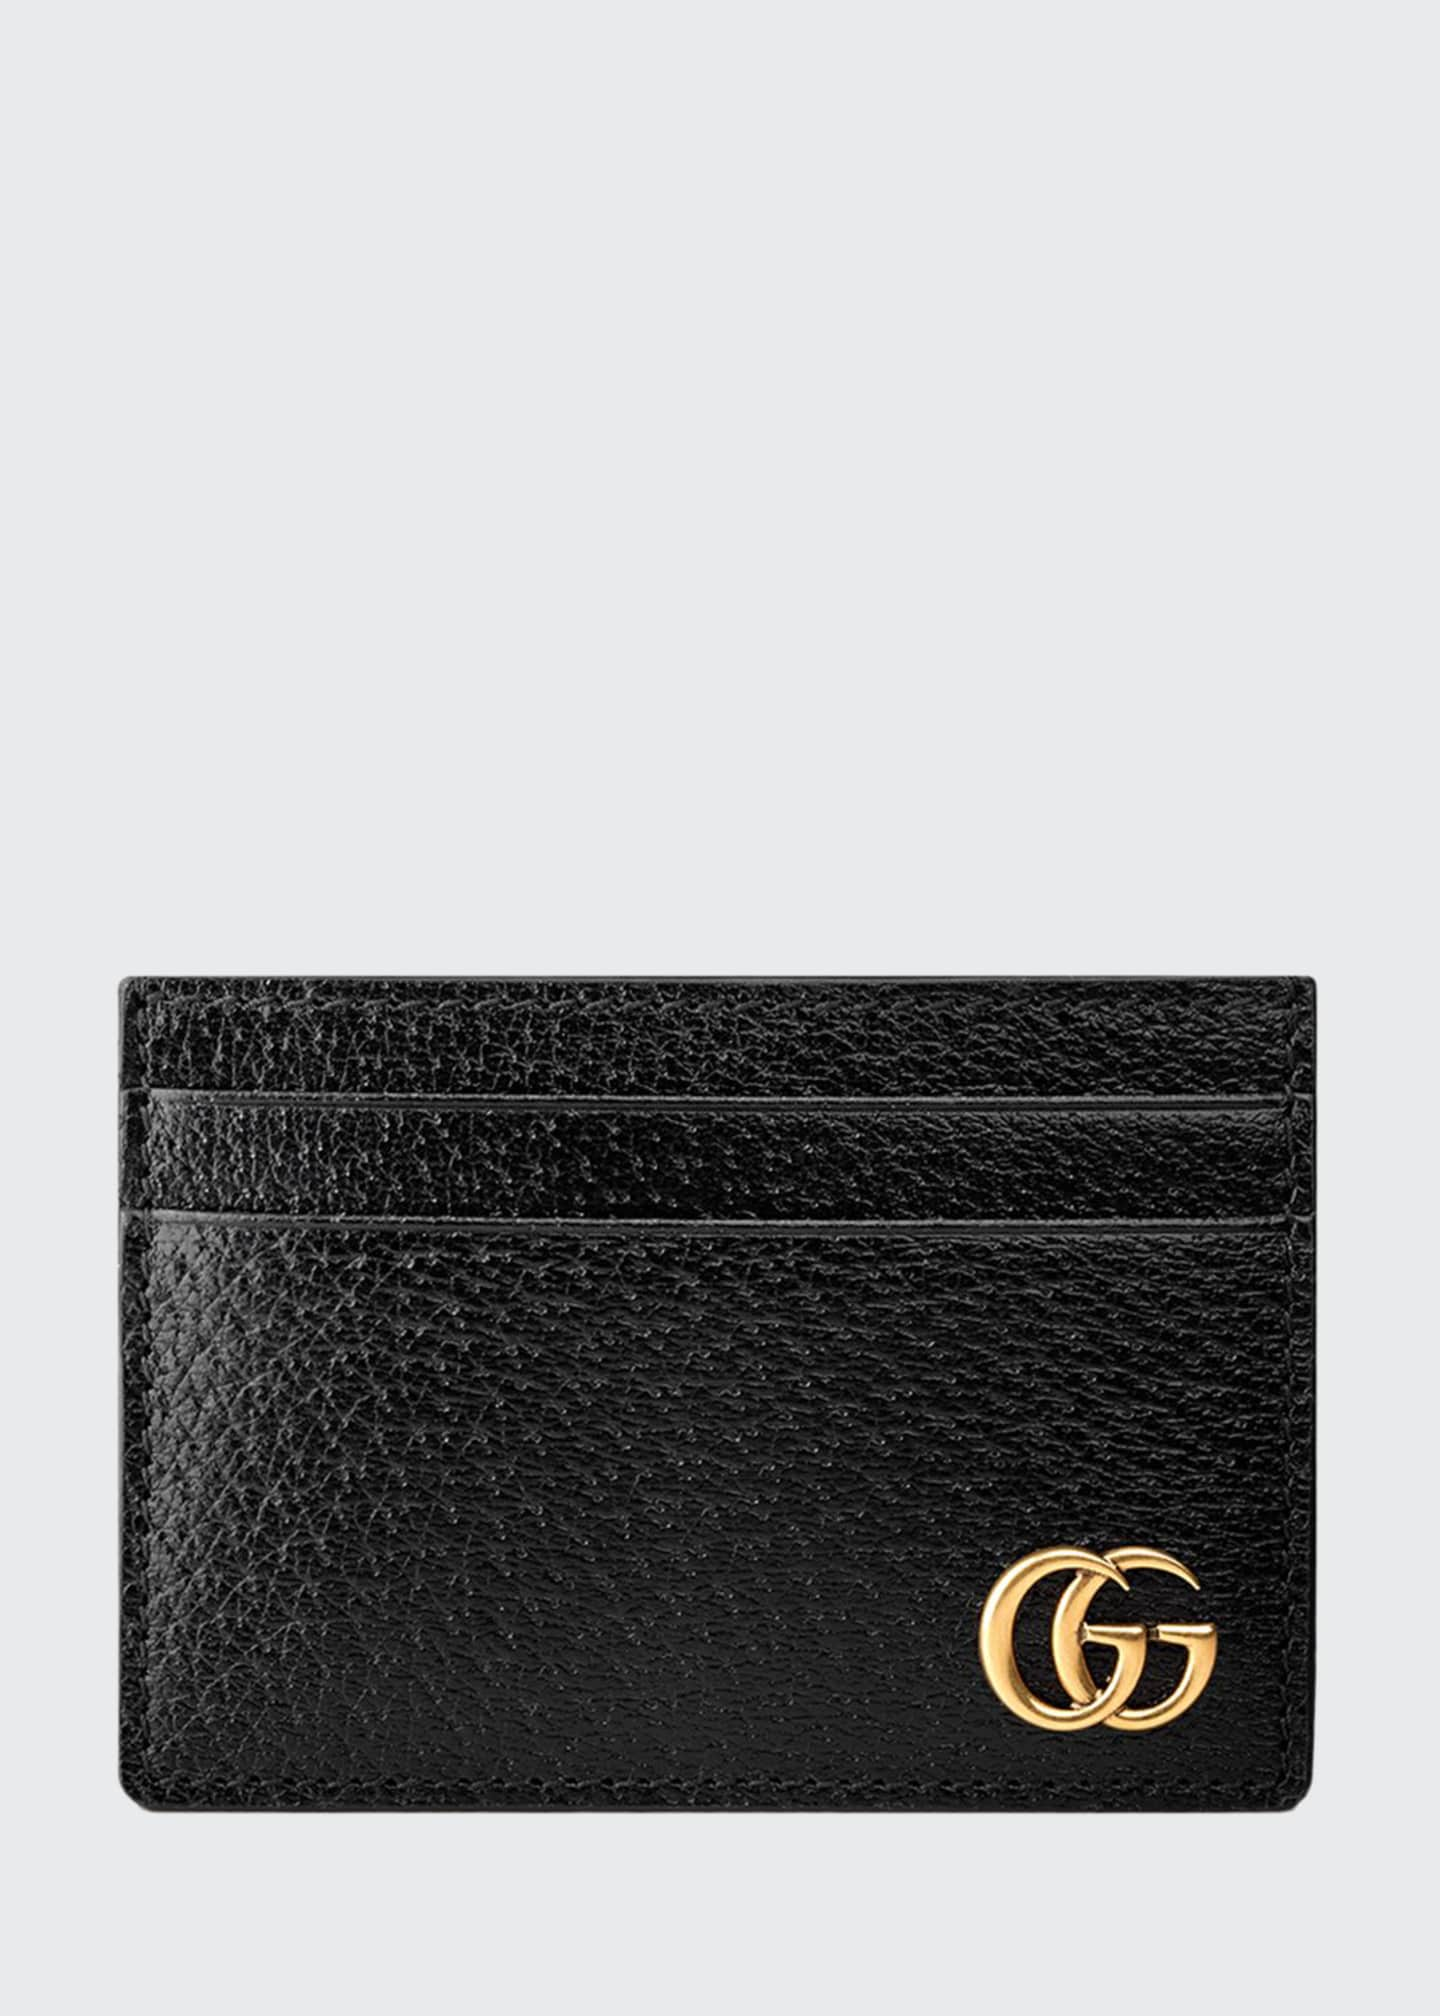 Gucci Men's Leather Credit Card Case with Money